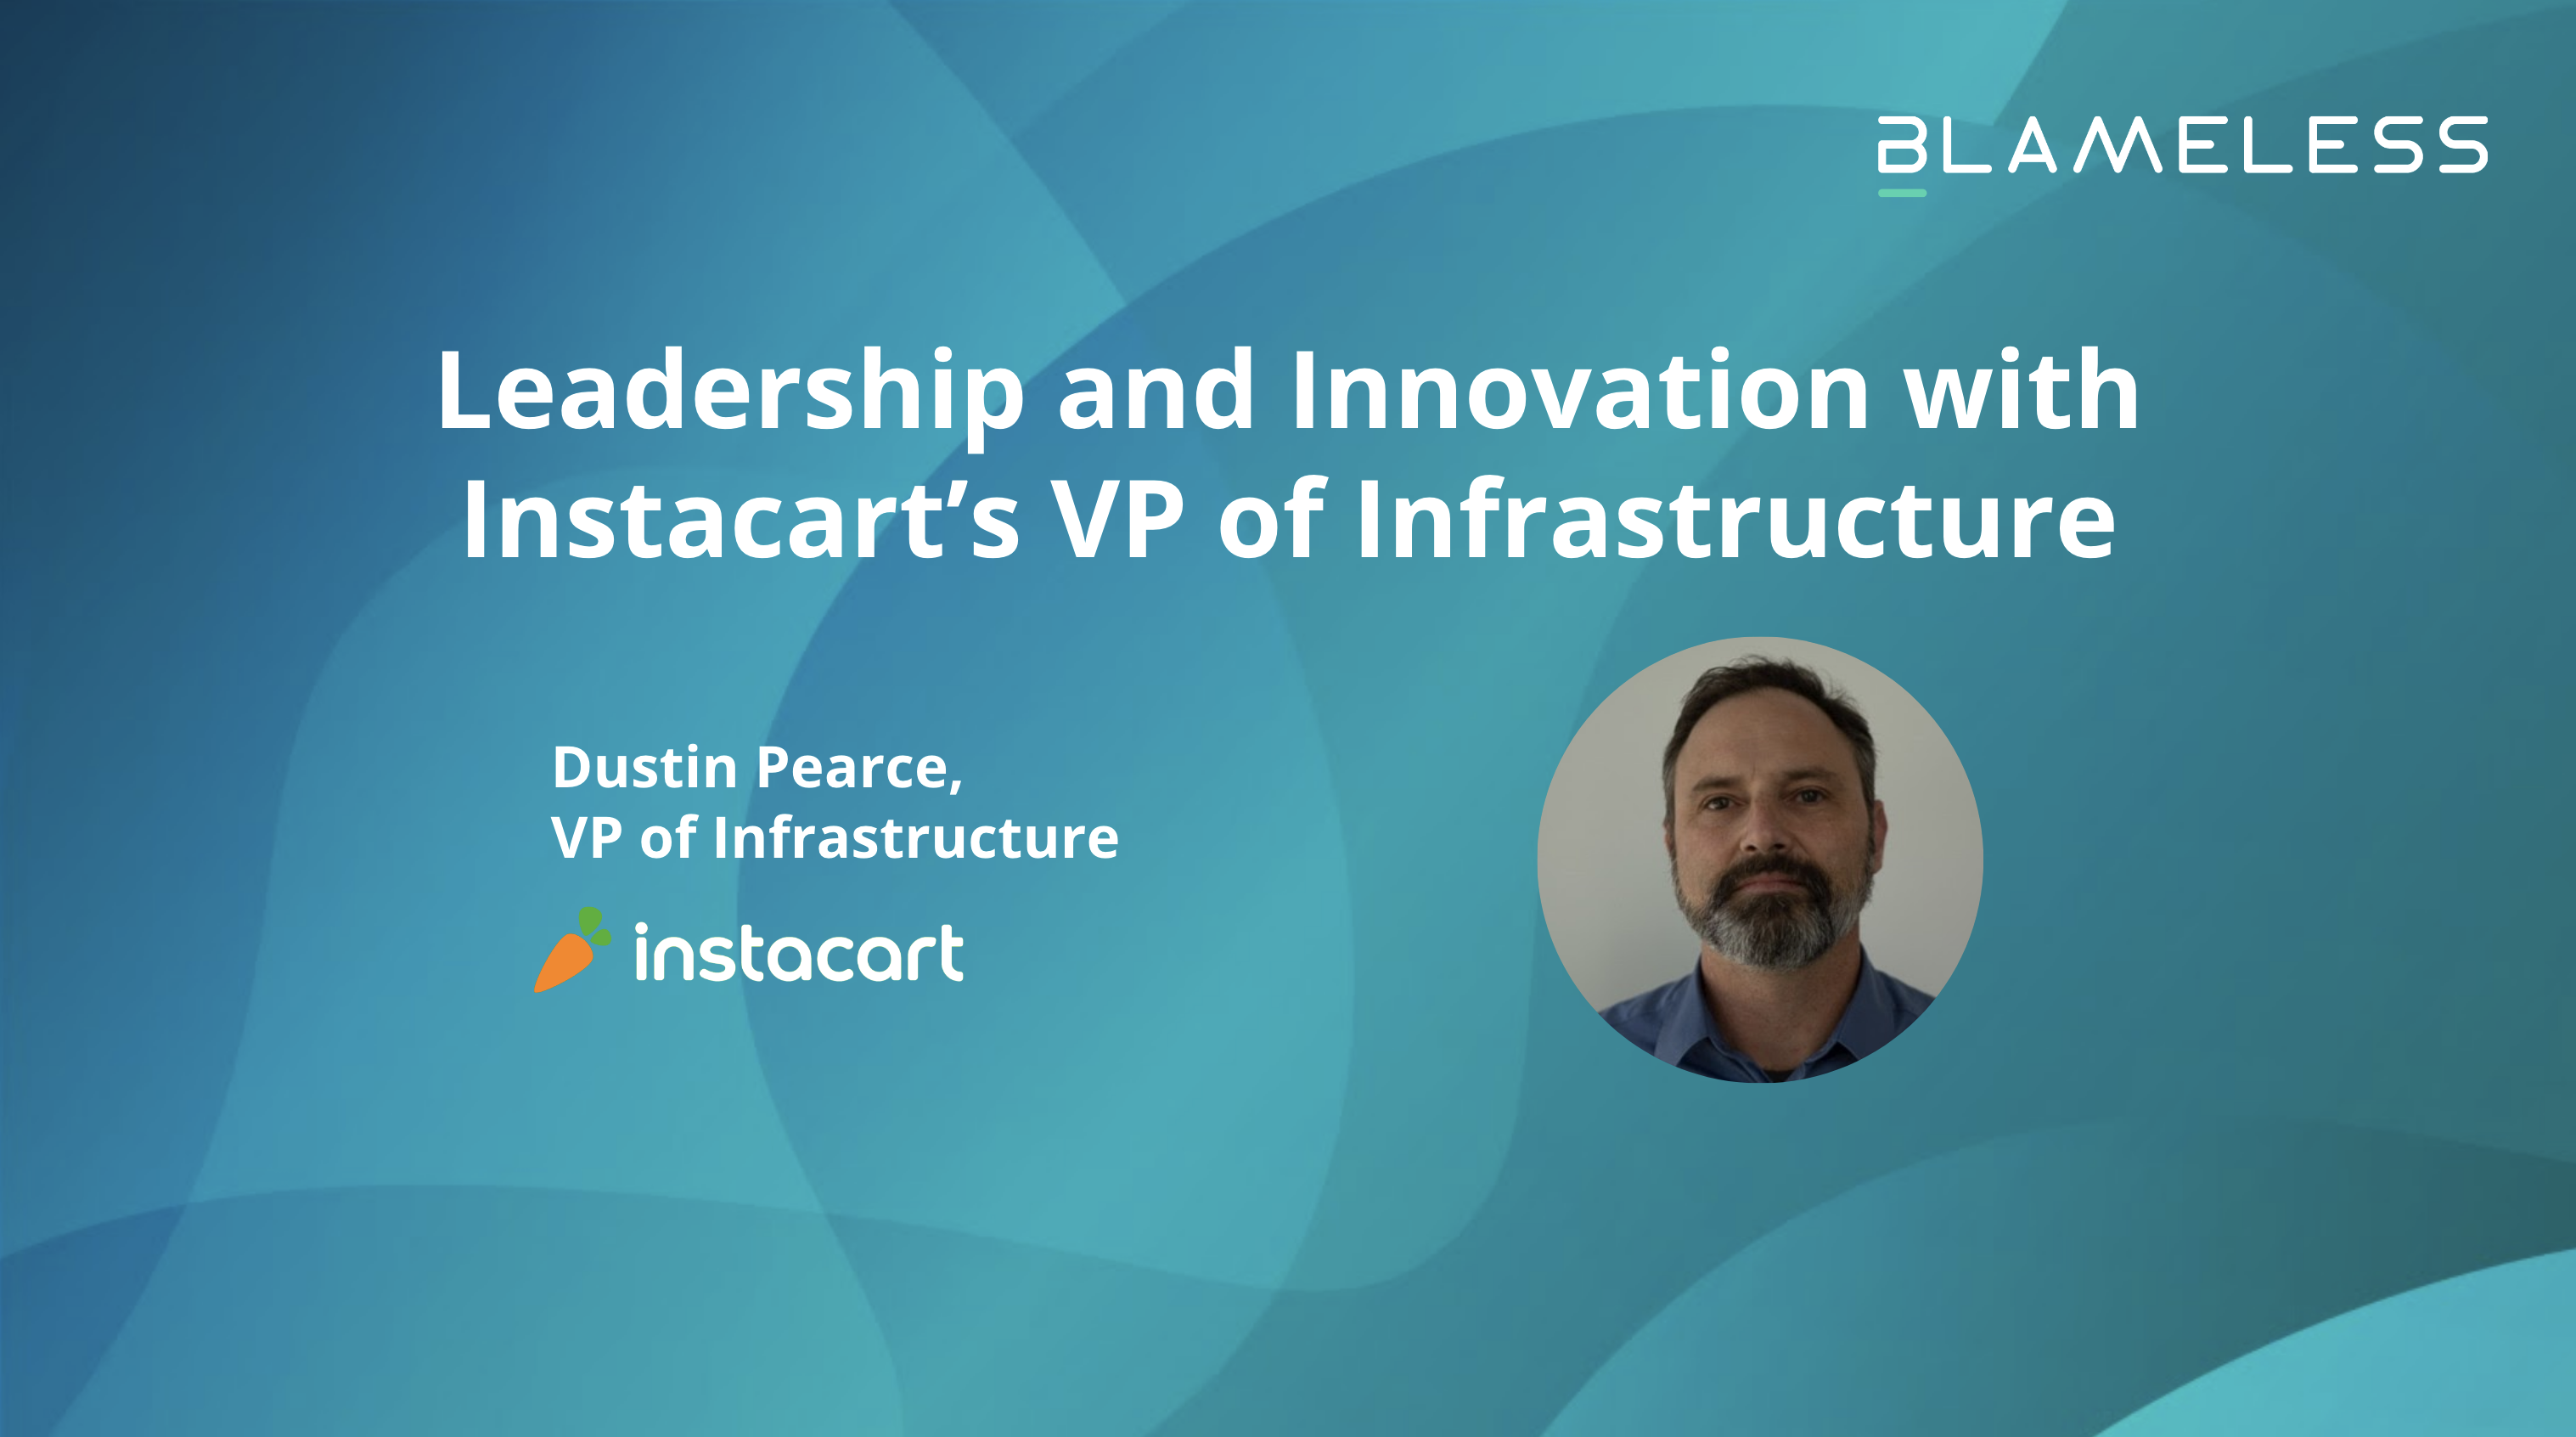 Leadership and Innovation with Instacart's VP of Infrastructure